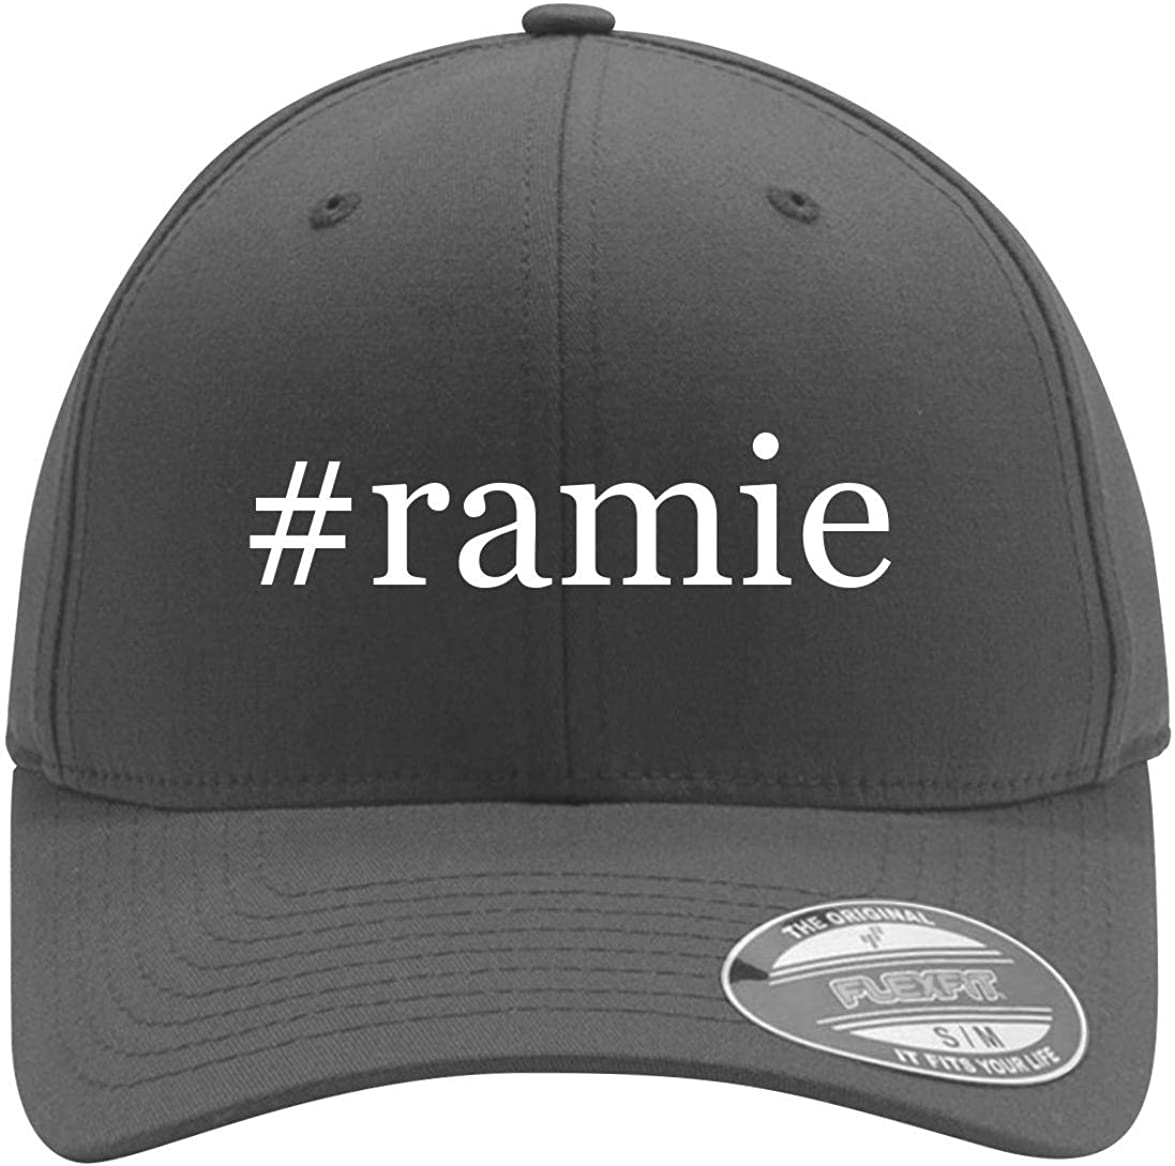 #Ramie - Adult Men'S Hashtag Flexfit Baseball Hat Cap